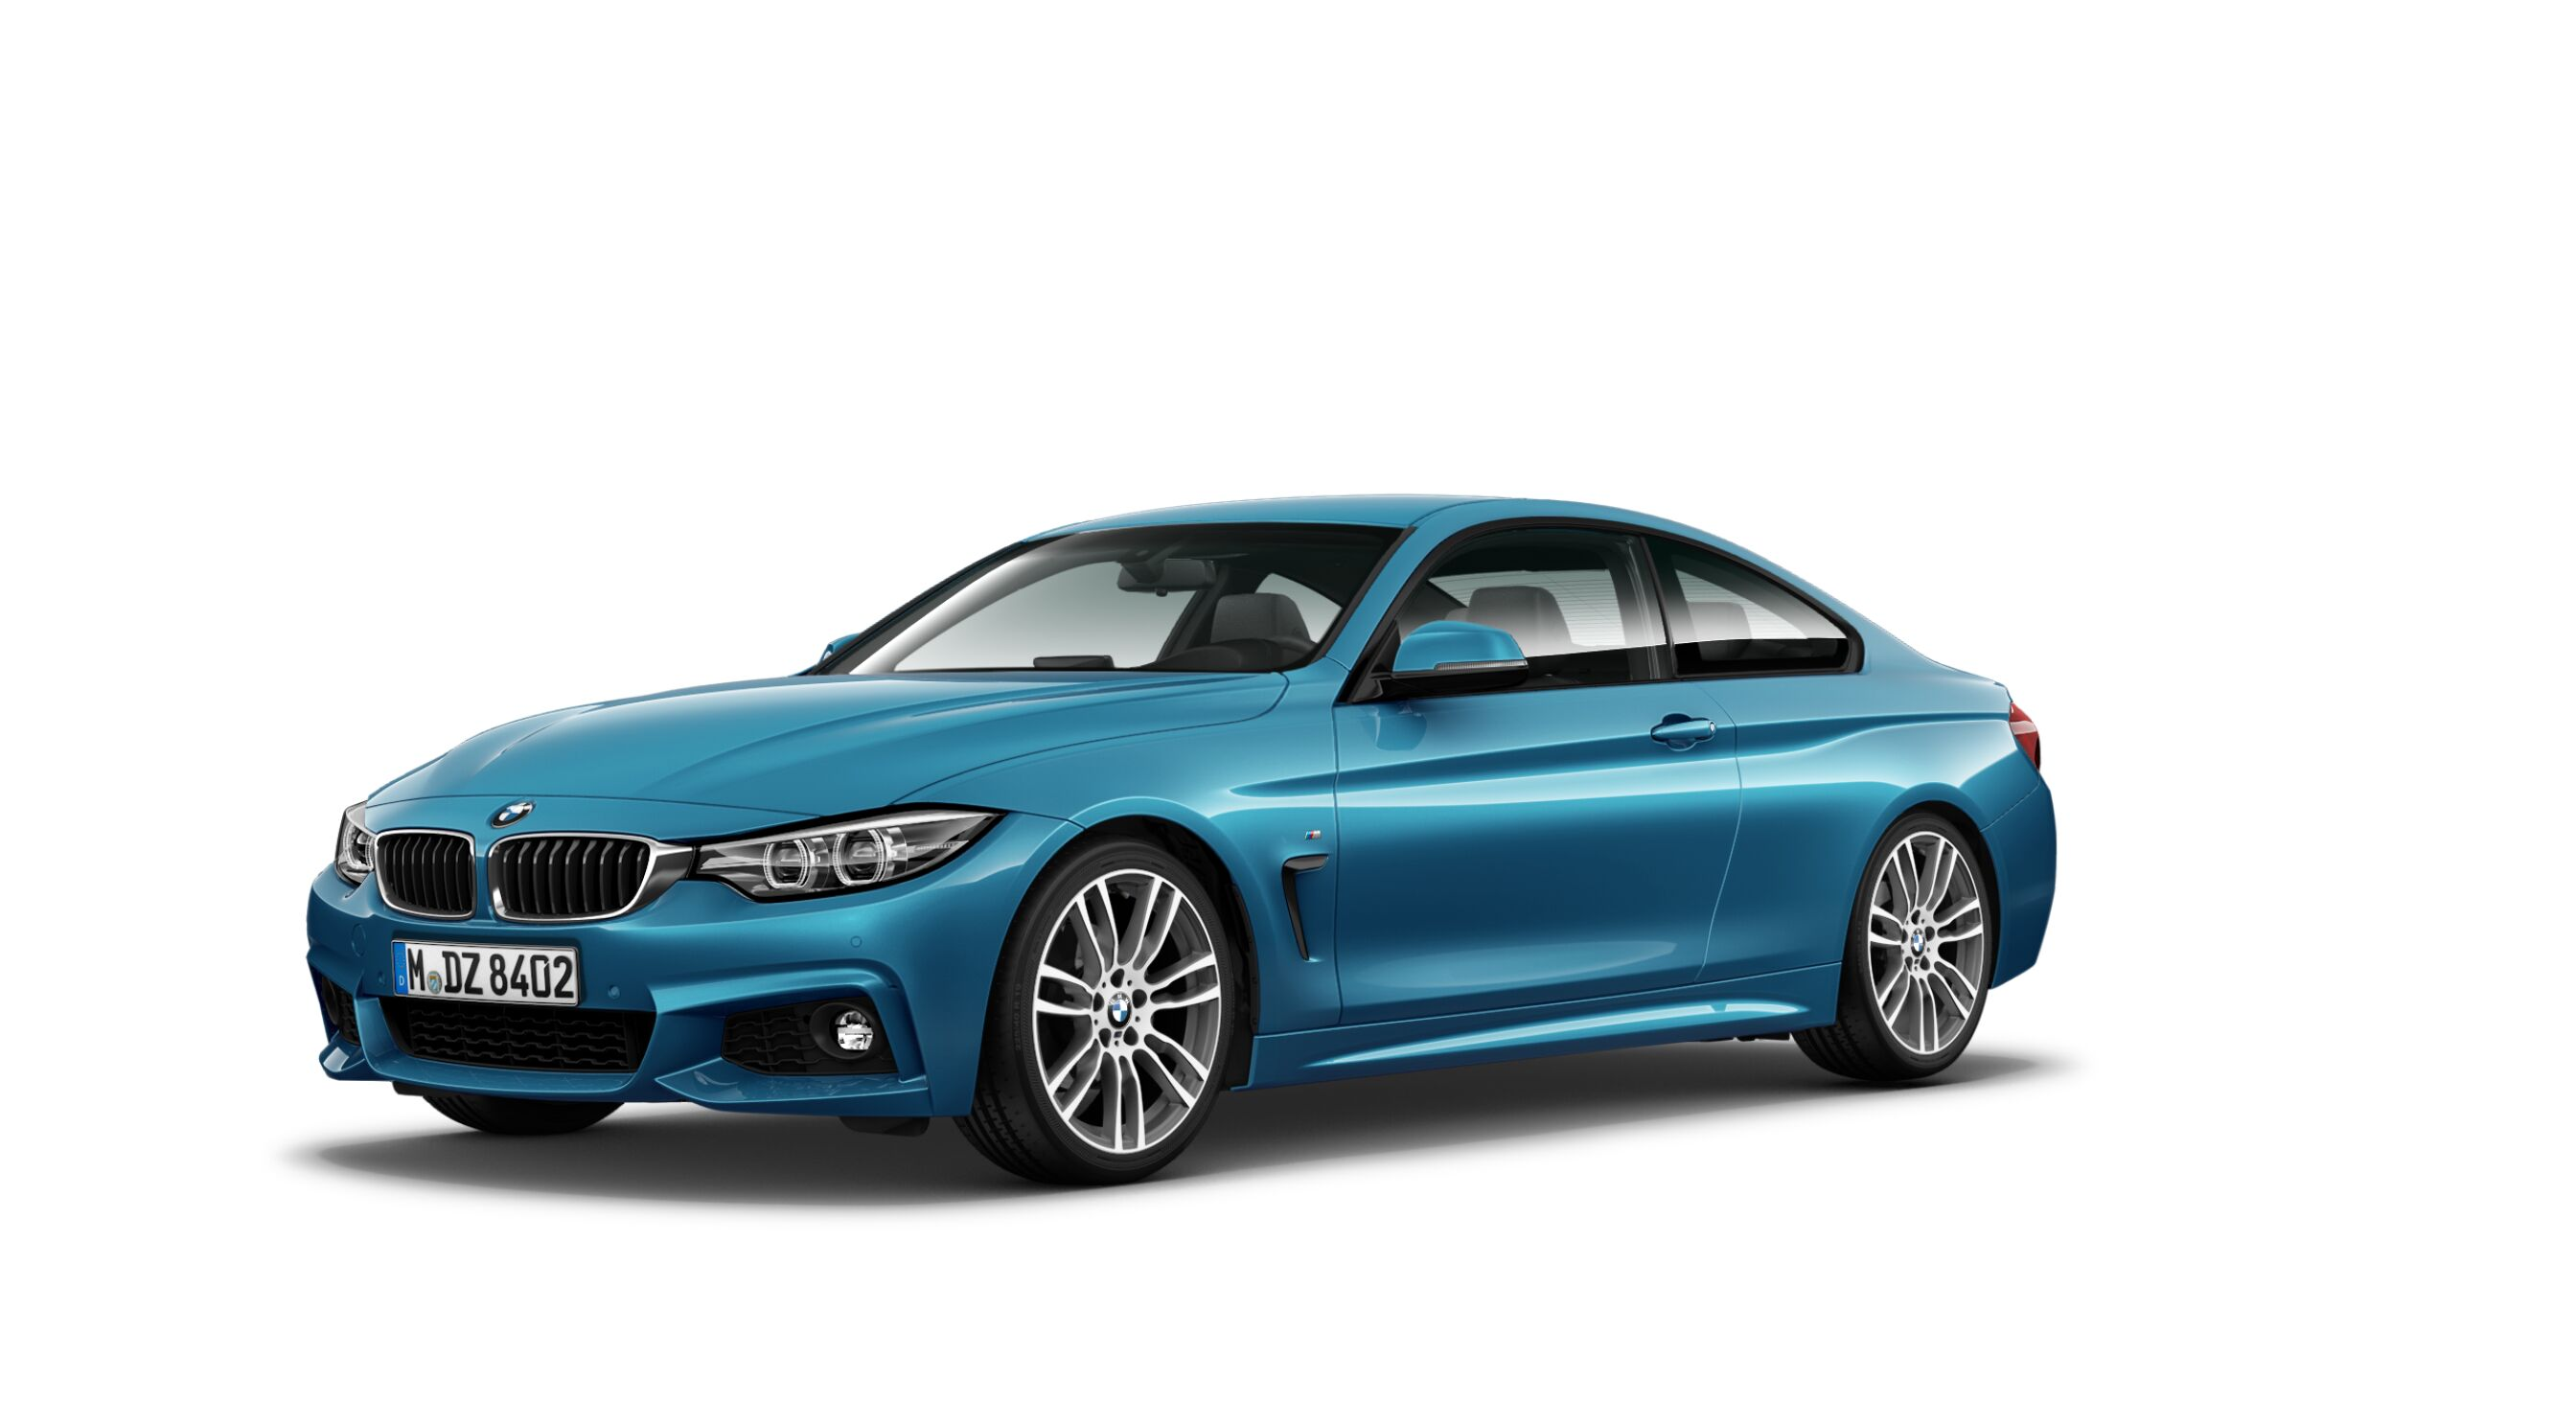 BMW BMW 435d xDrive M Sport Coupe